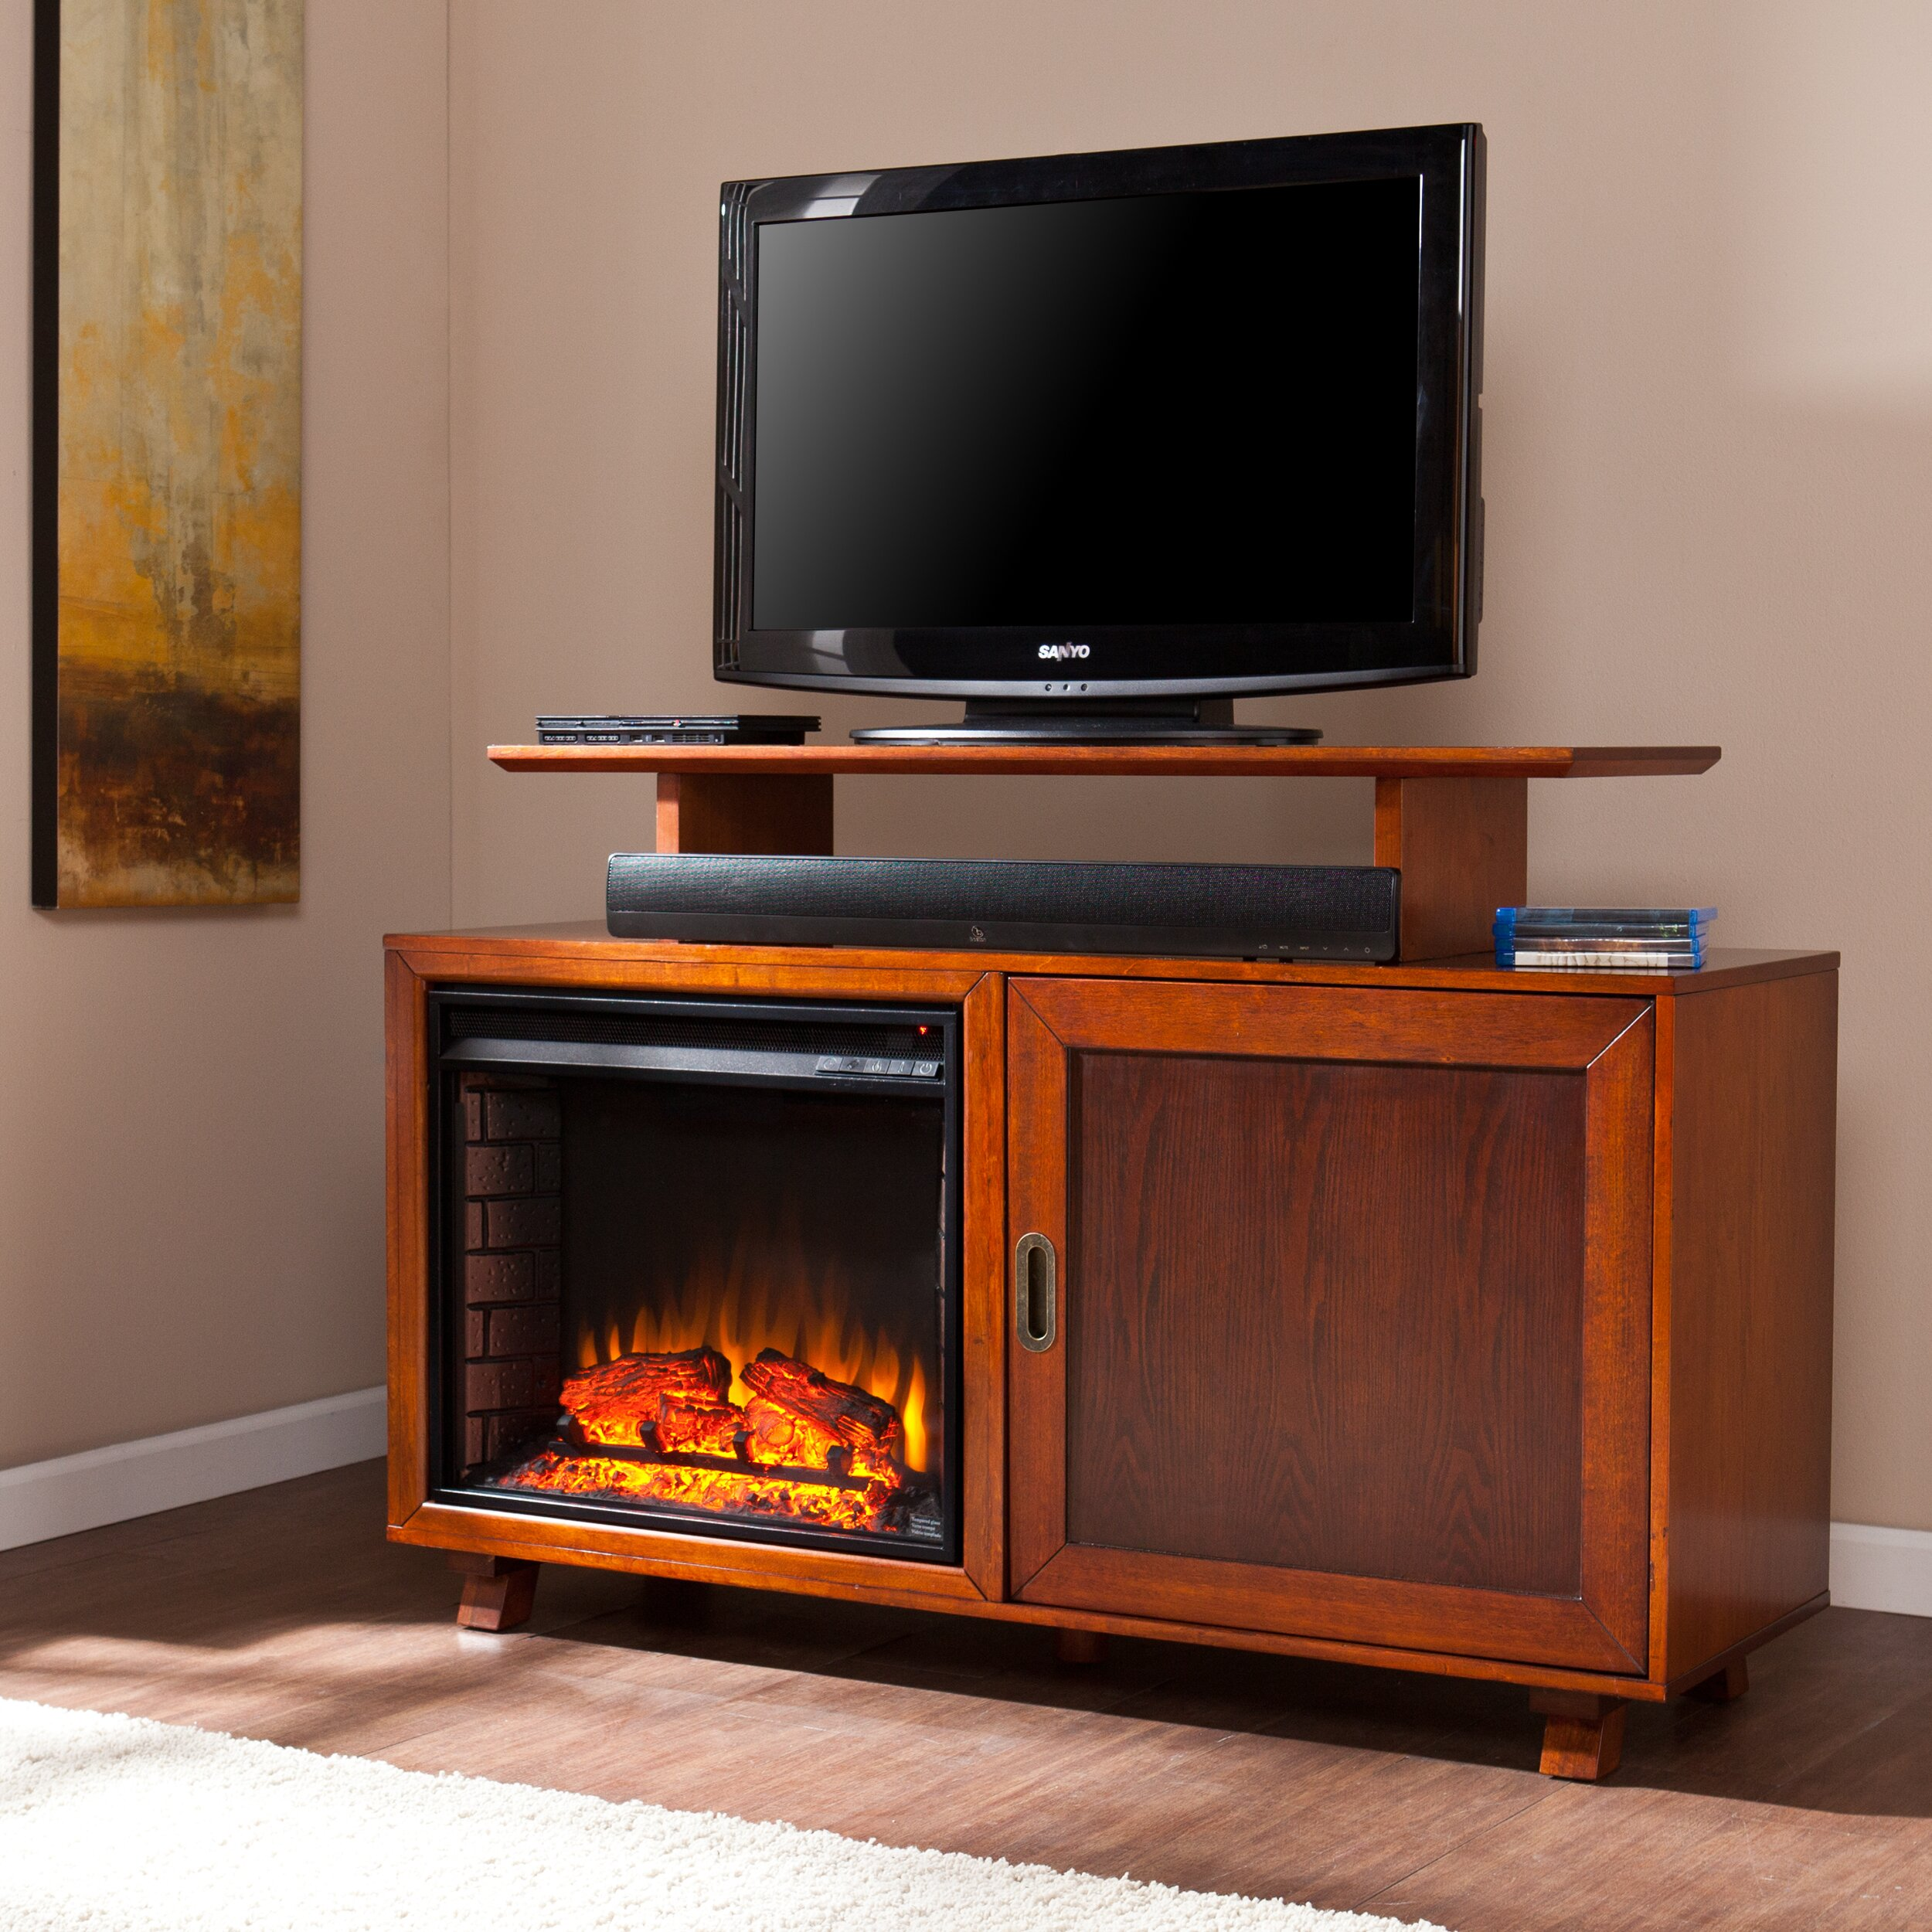 wildon home barton tv stand with electric fireplace reviews wayfair. Black Bedroom Furniture Sets. Home Design Ideas